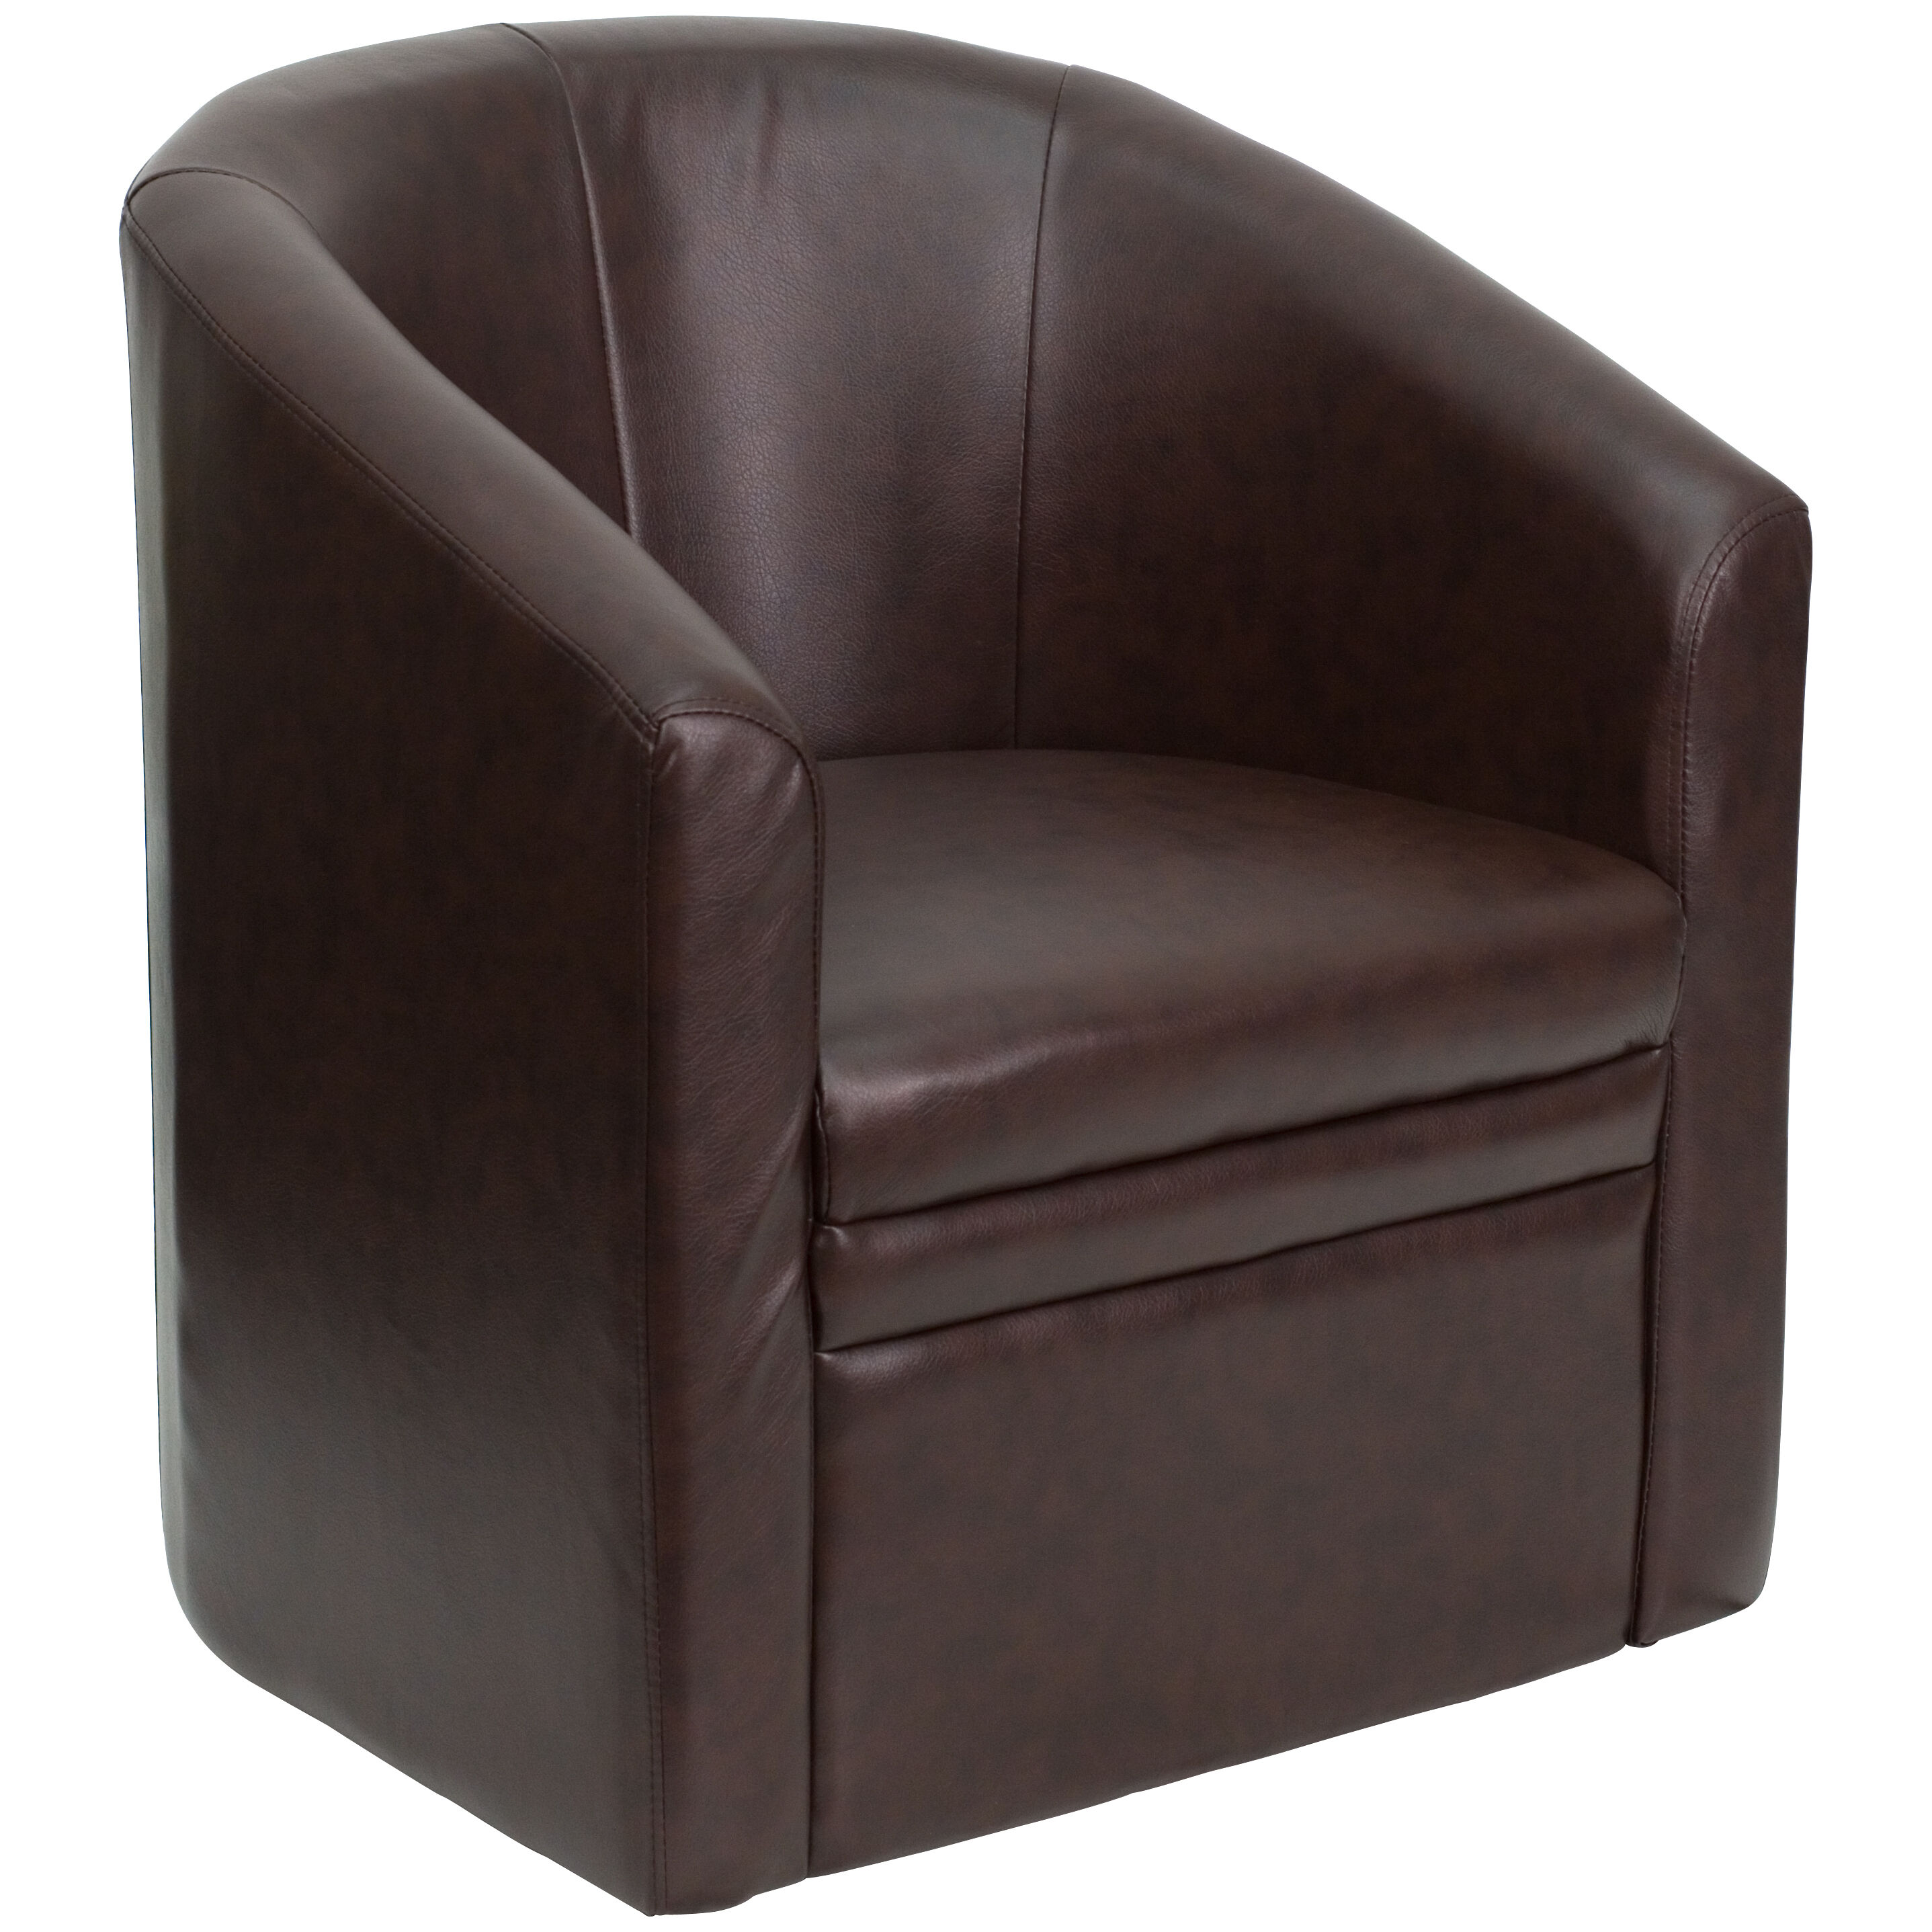 Brown Leather Chair Go S 03 Bn Full Gg Churchchairs4less Com